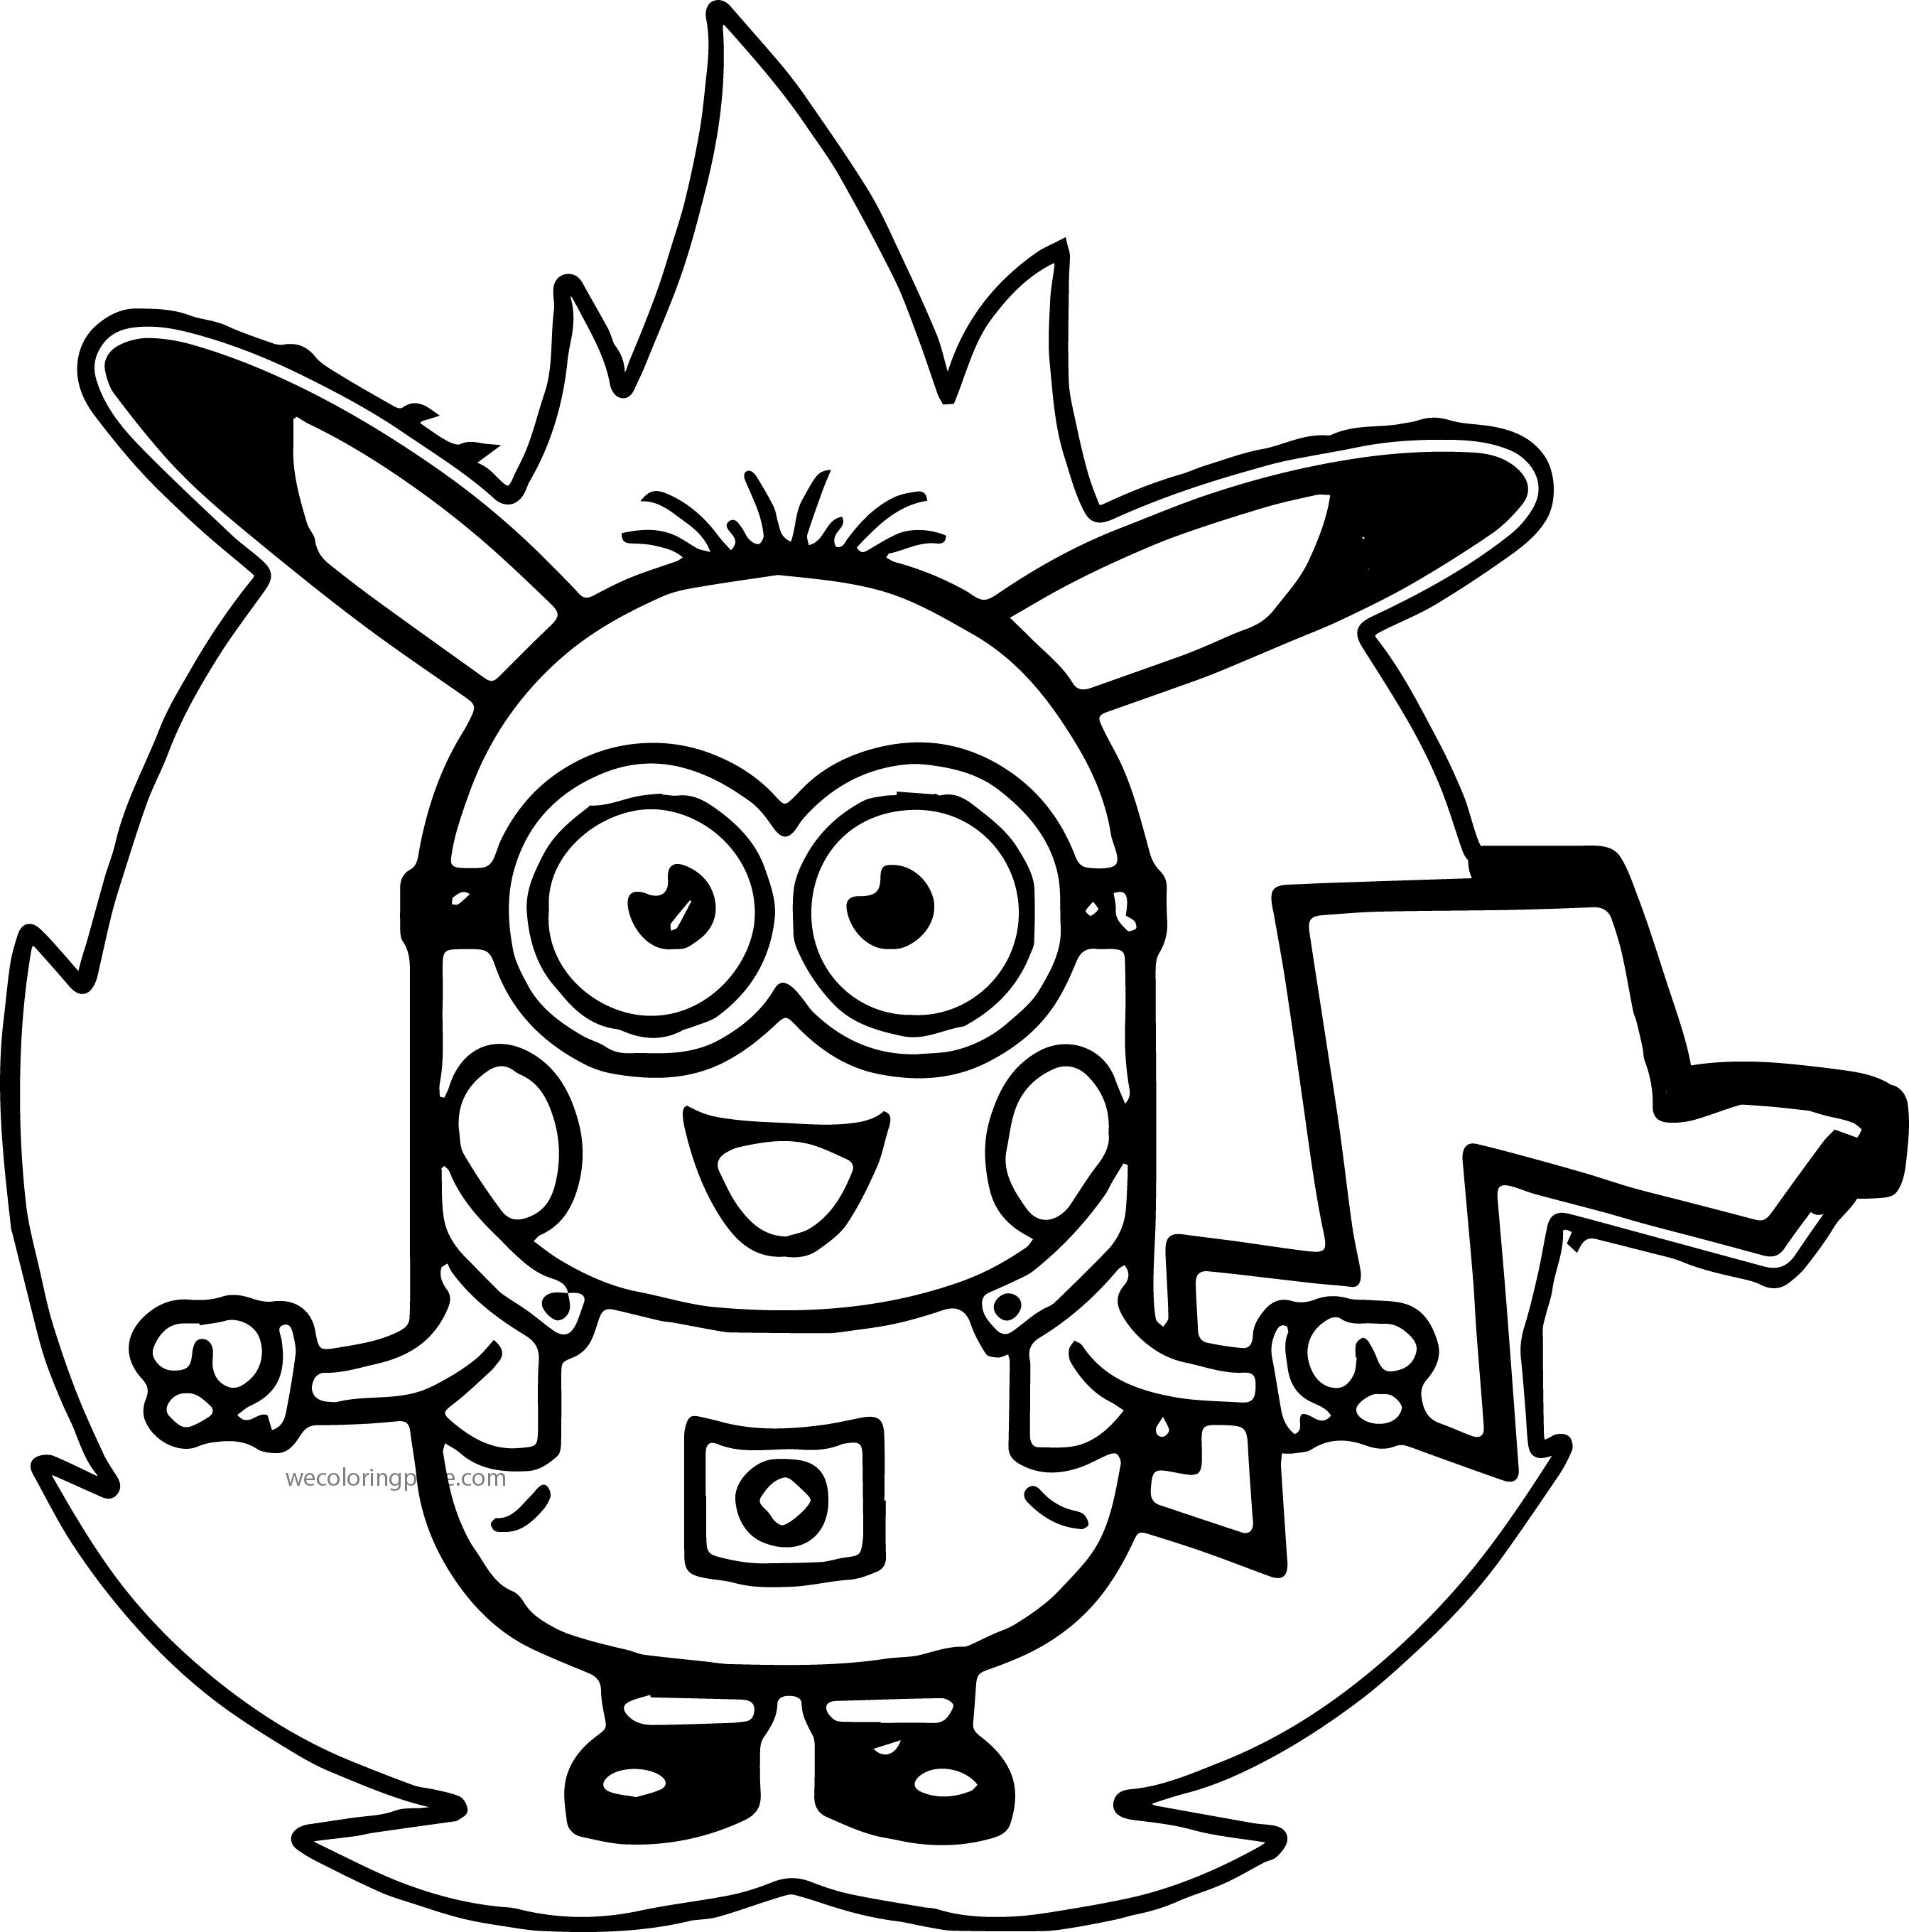 Minions Coler Sheet Bob Bing Images Minion Coloring Pages Minions Coloring Pages Cartoon Coloring Pages